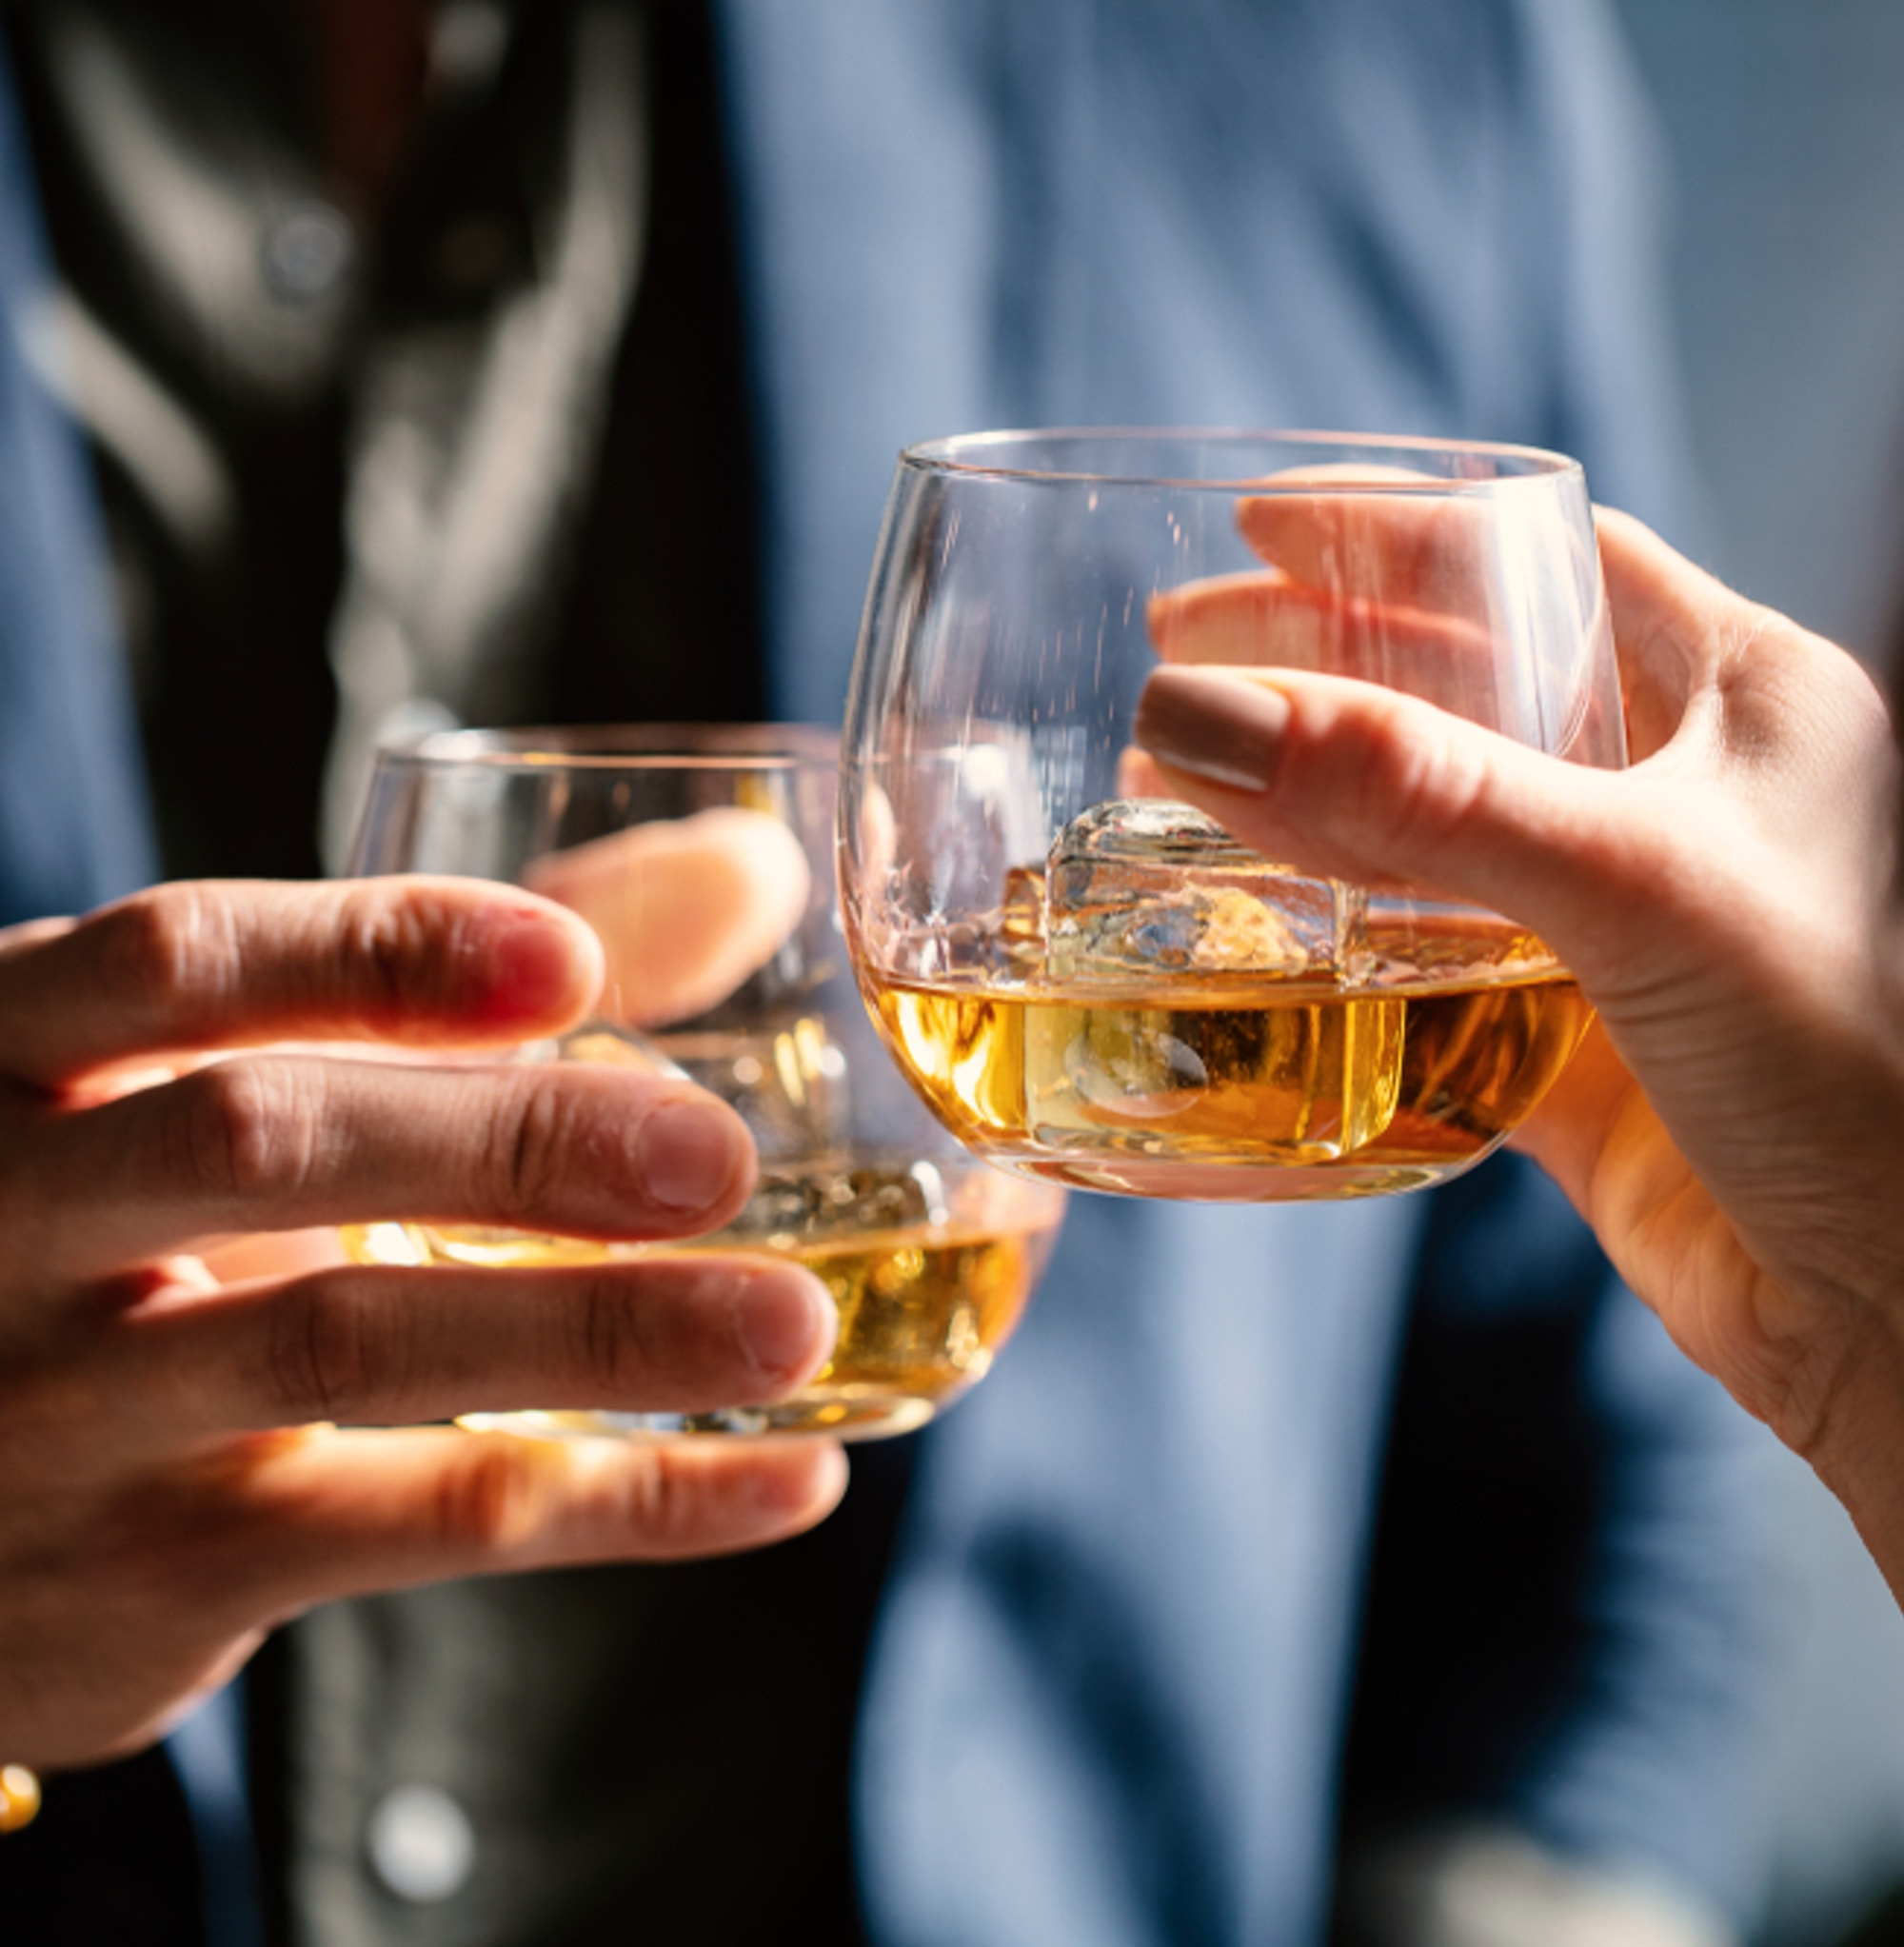 Whisky cheers